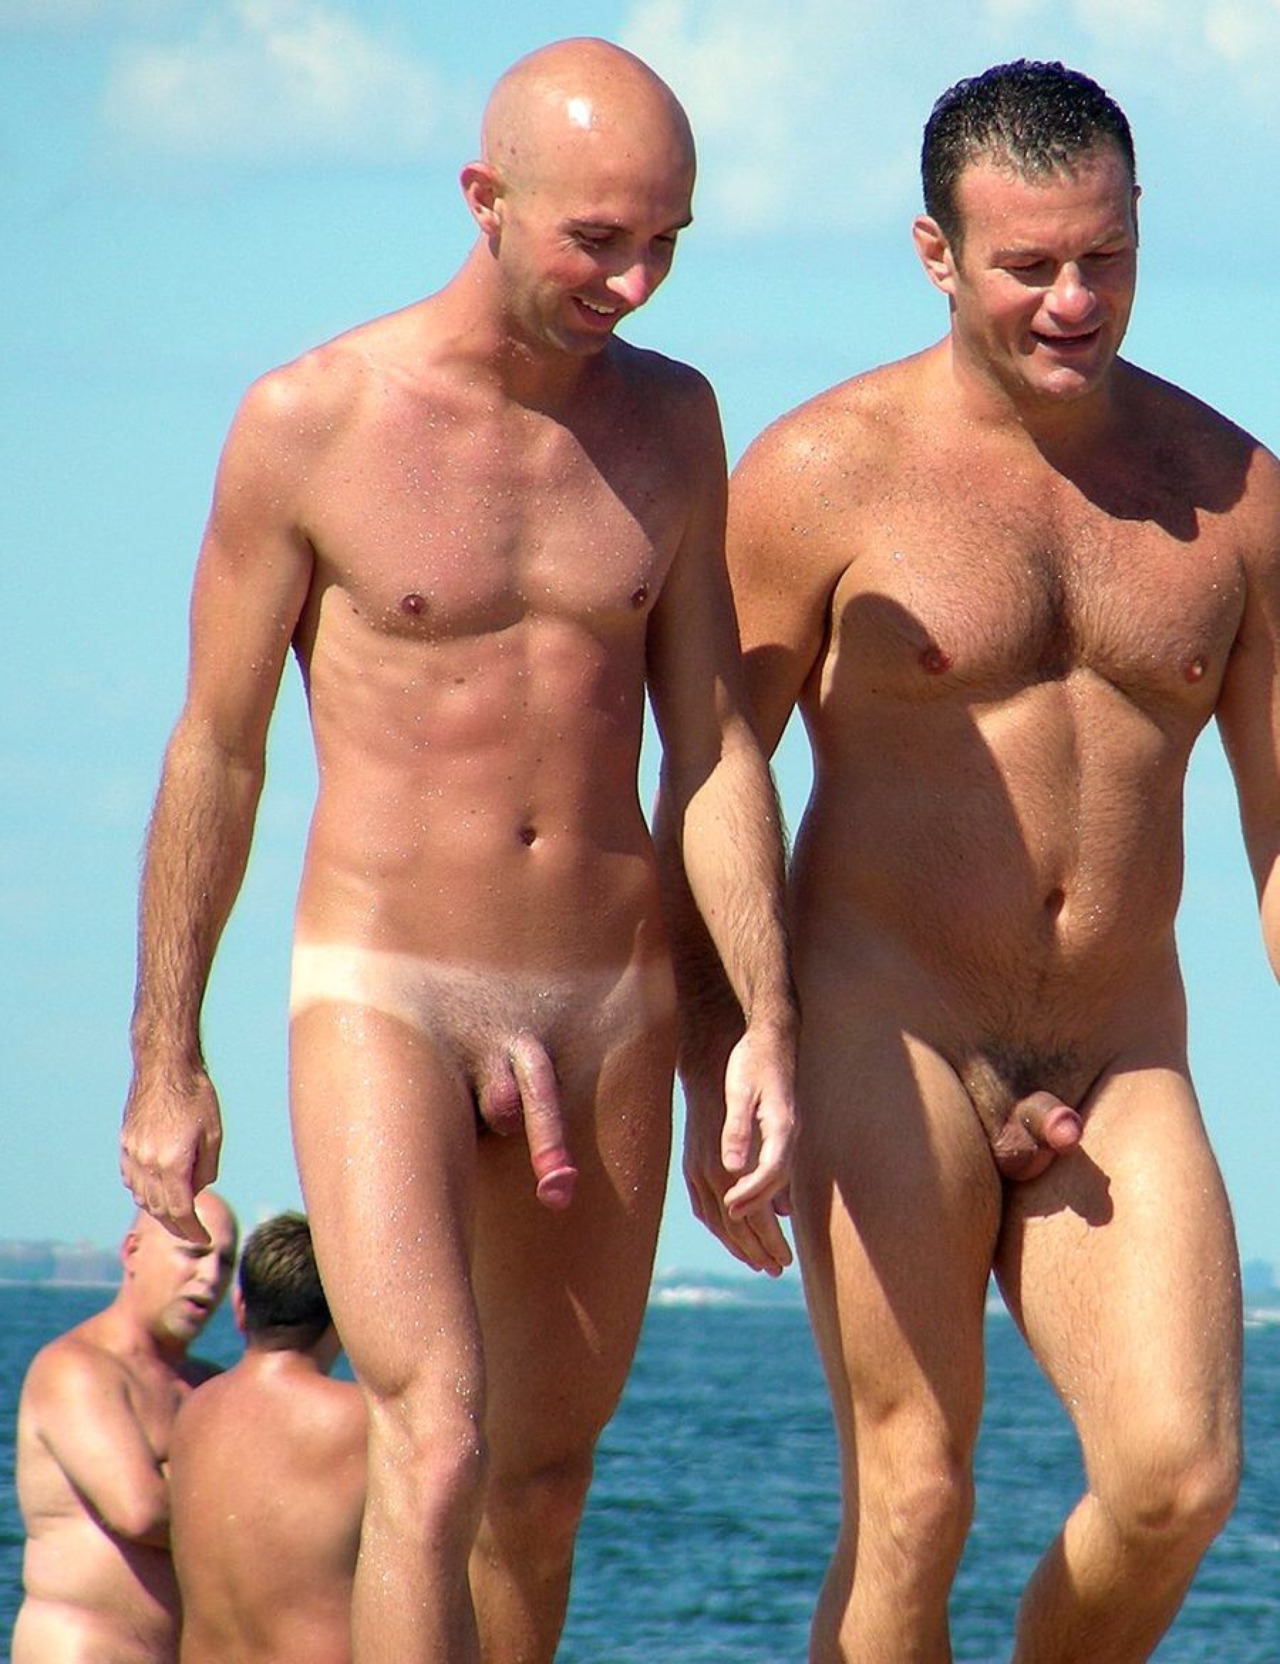 Male nude couples